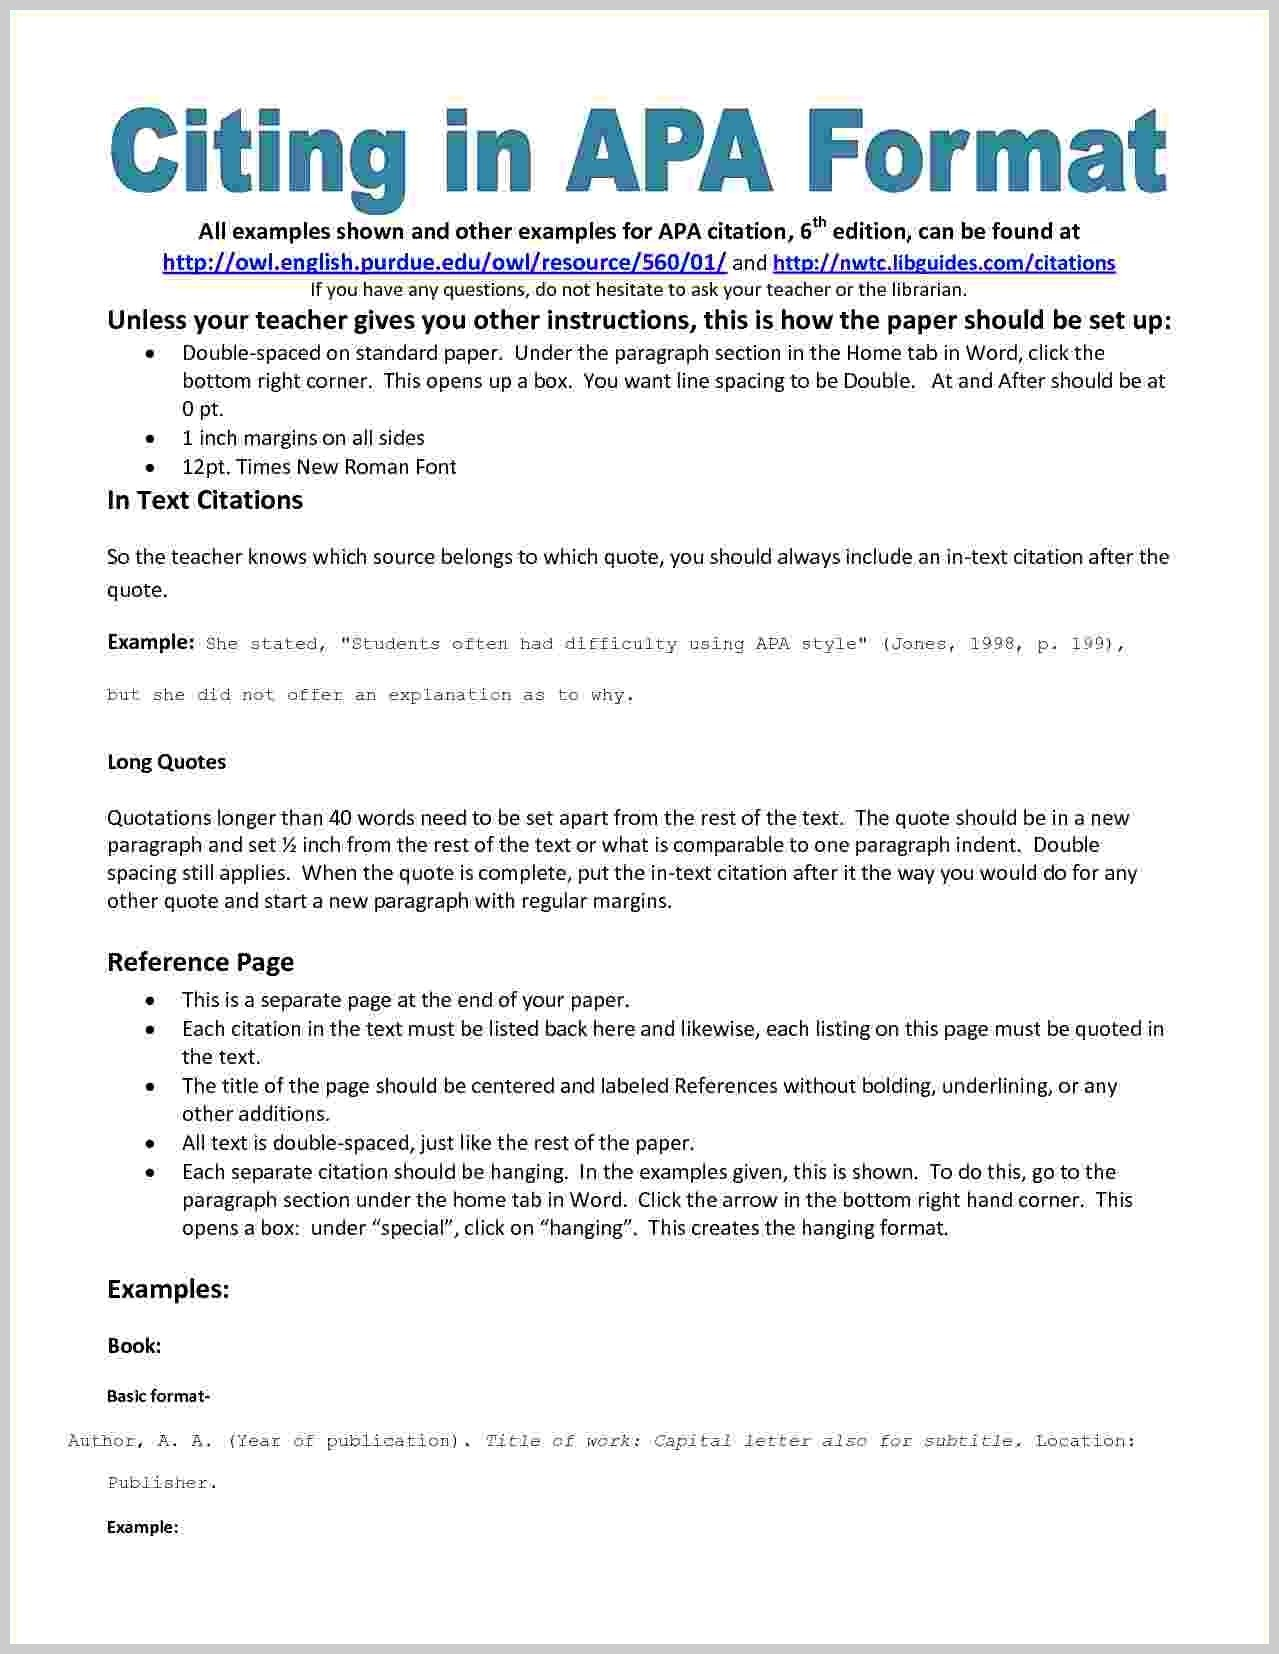 003 Research Paper Database Papers Apa Style Reference In Text Citation Mla Examples Toreto Co Stirring Pdf Online Distributed Full